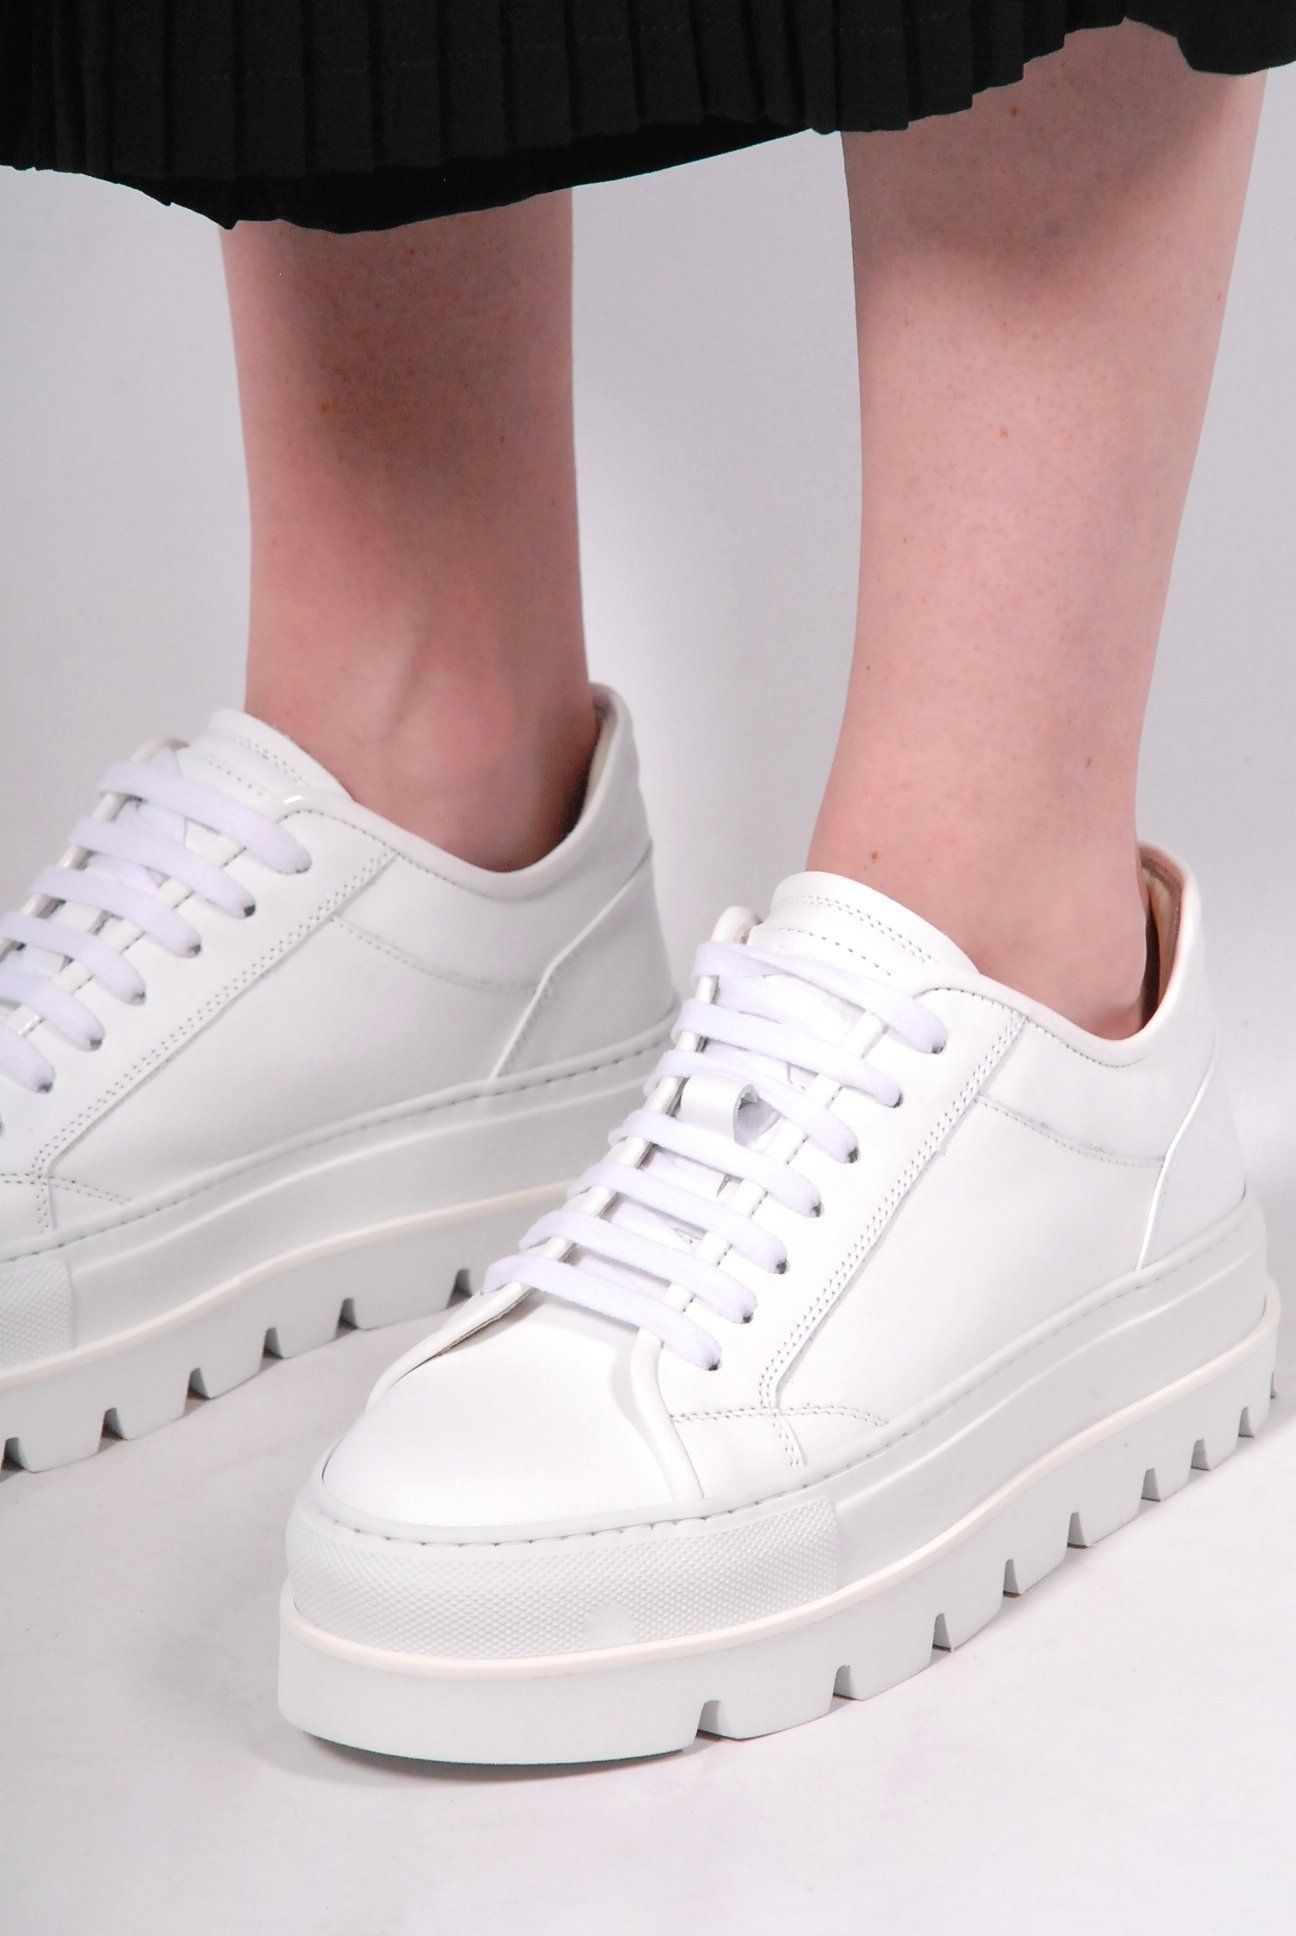 3d5170b5d926 MM6 Maison Margiela White Sneakers with platform cleated sole. Leather